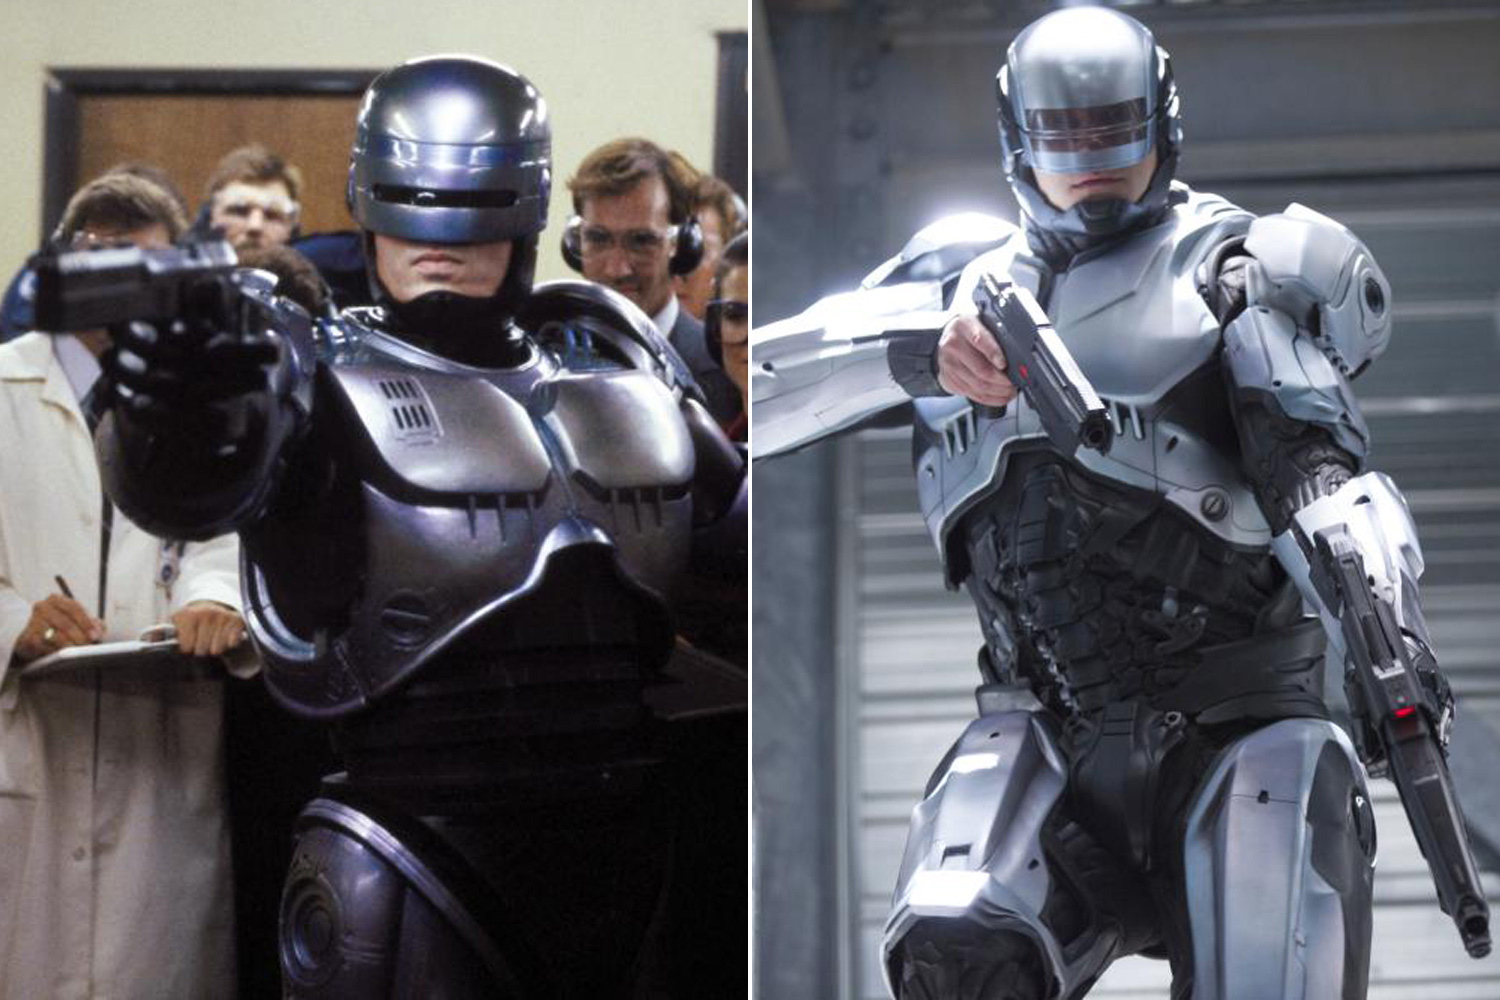 RoboCop first set its robot eyes on the criminals of Detroit in 1987 and was rebooted in 2014 in a film of the same name.